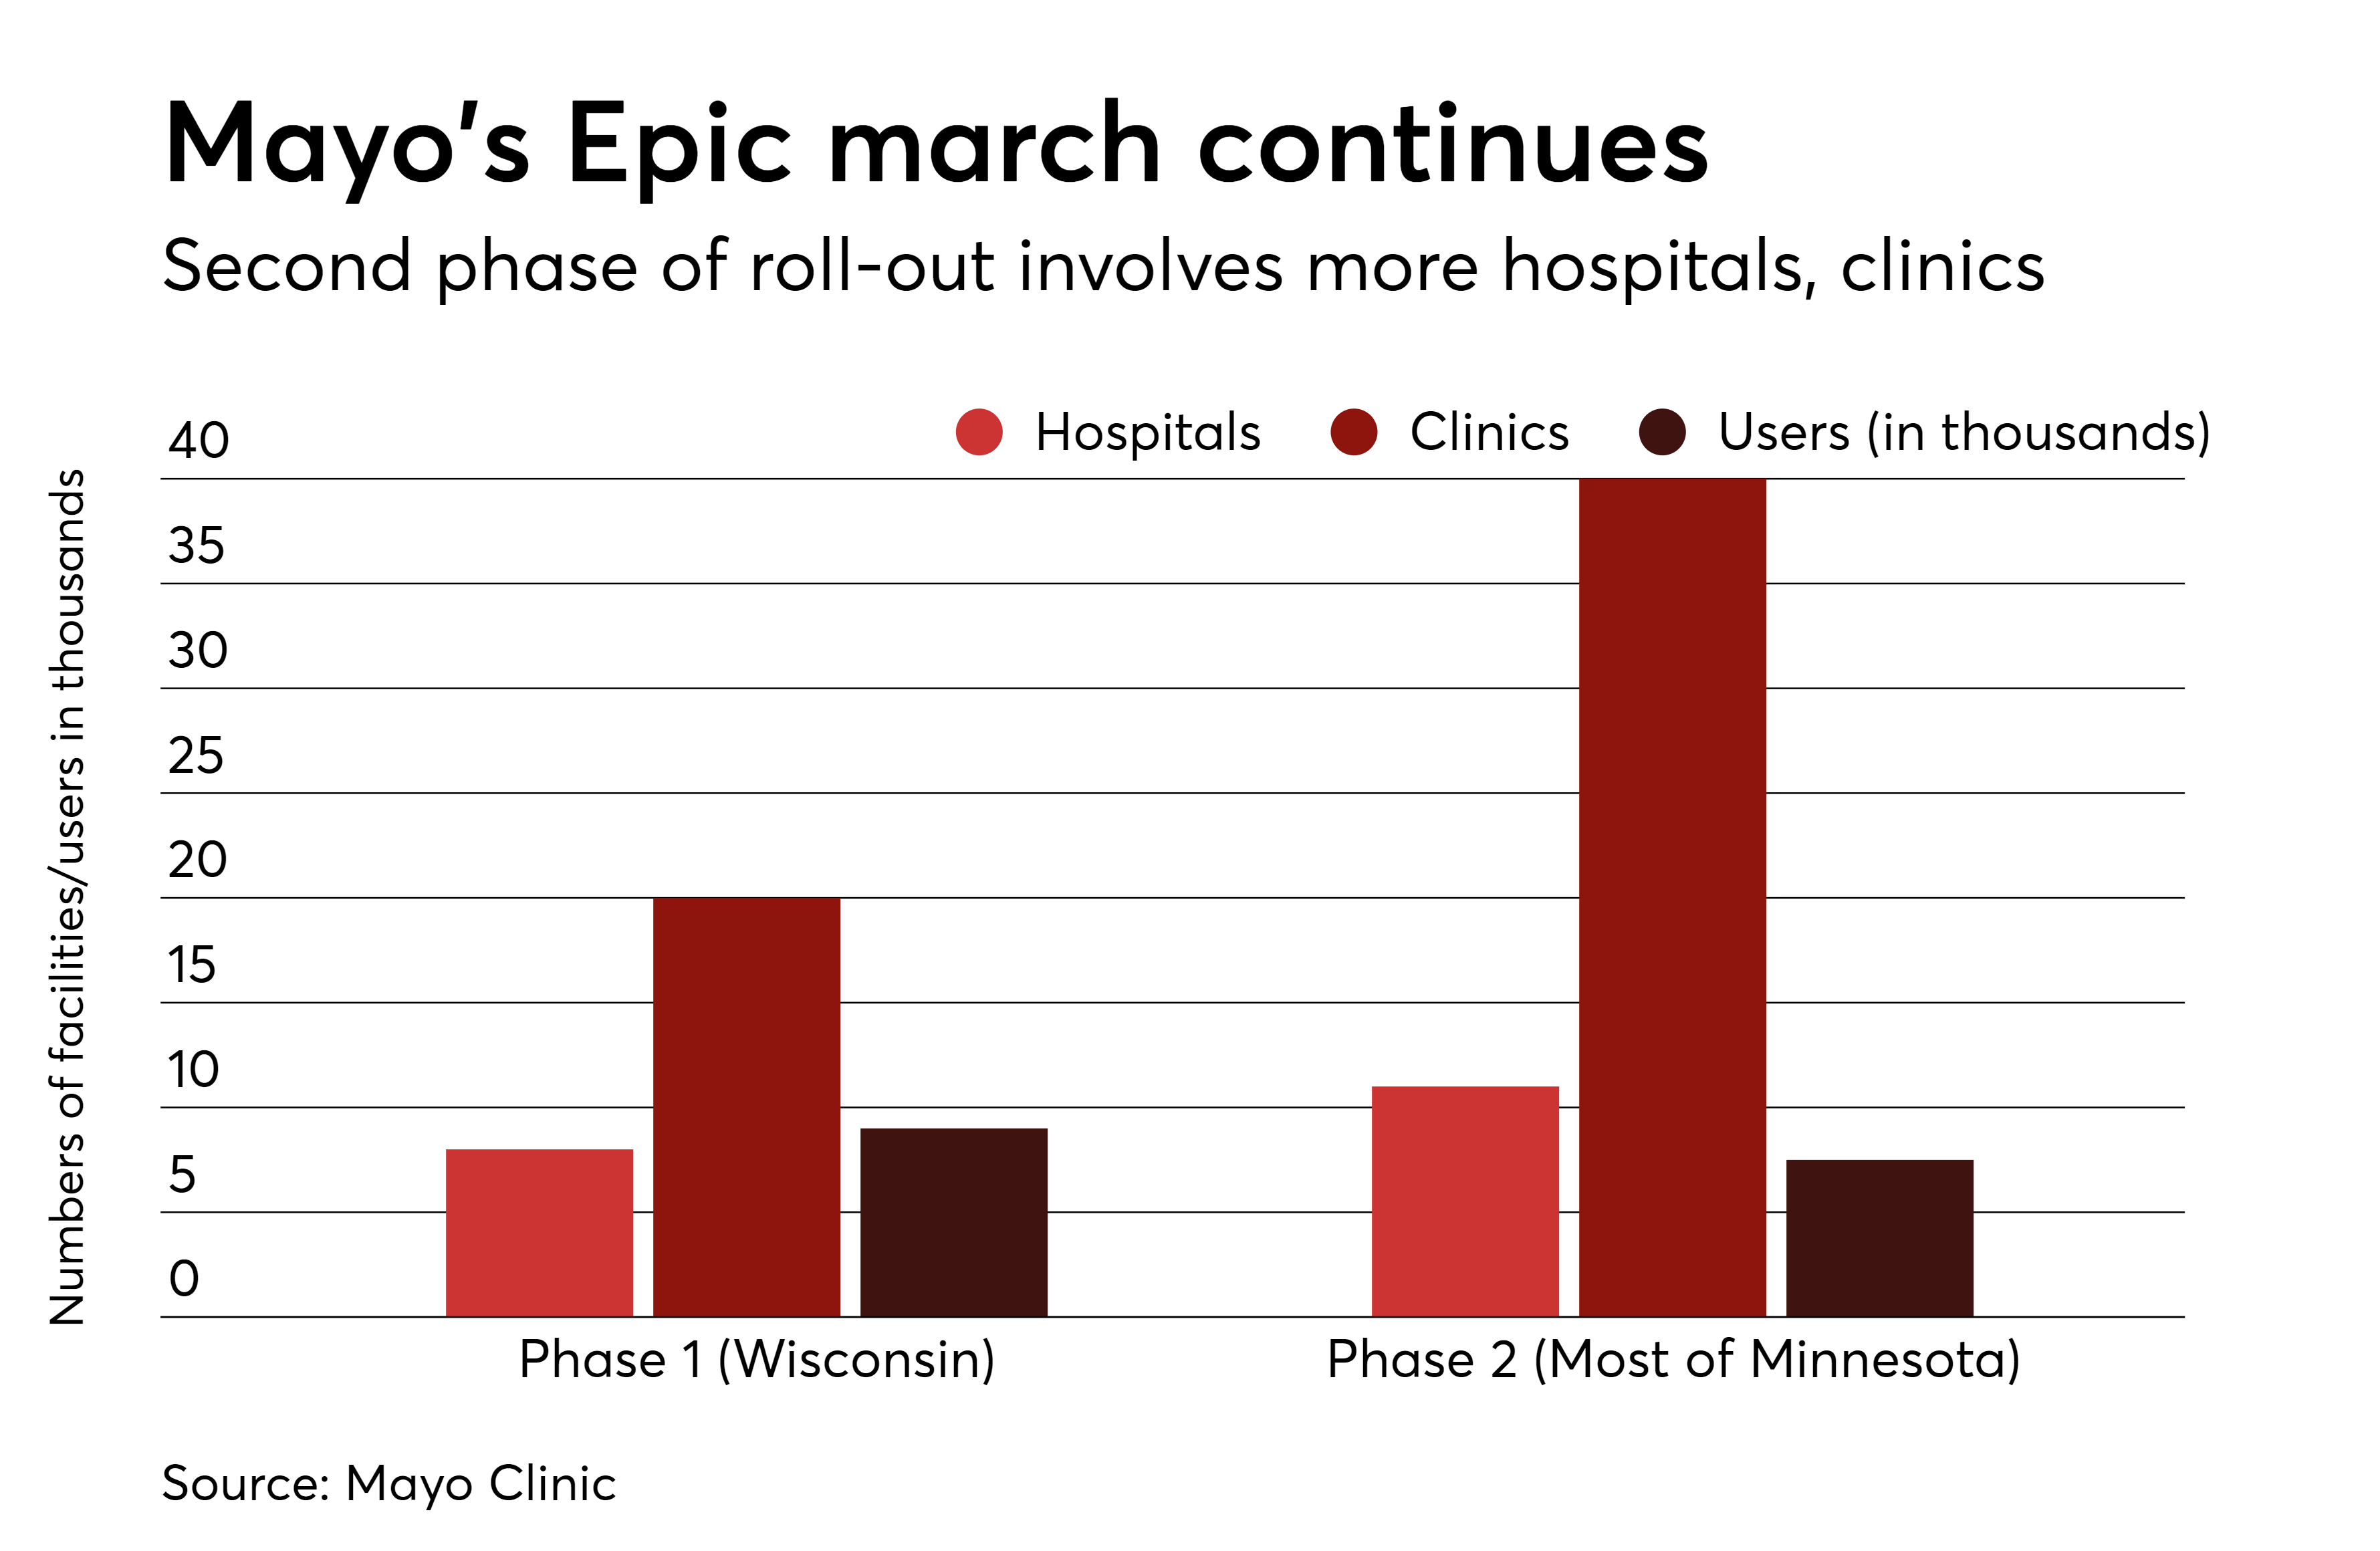 Mayo Clinic starts to roll out second phase of Epic